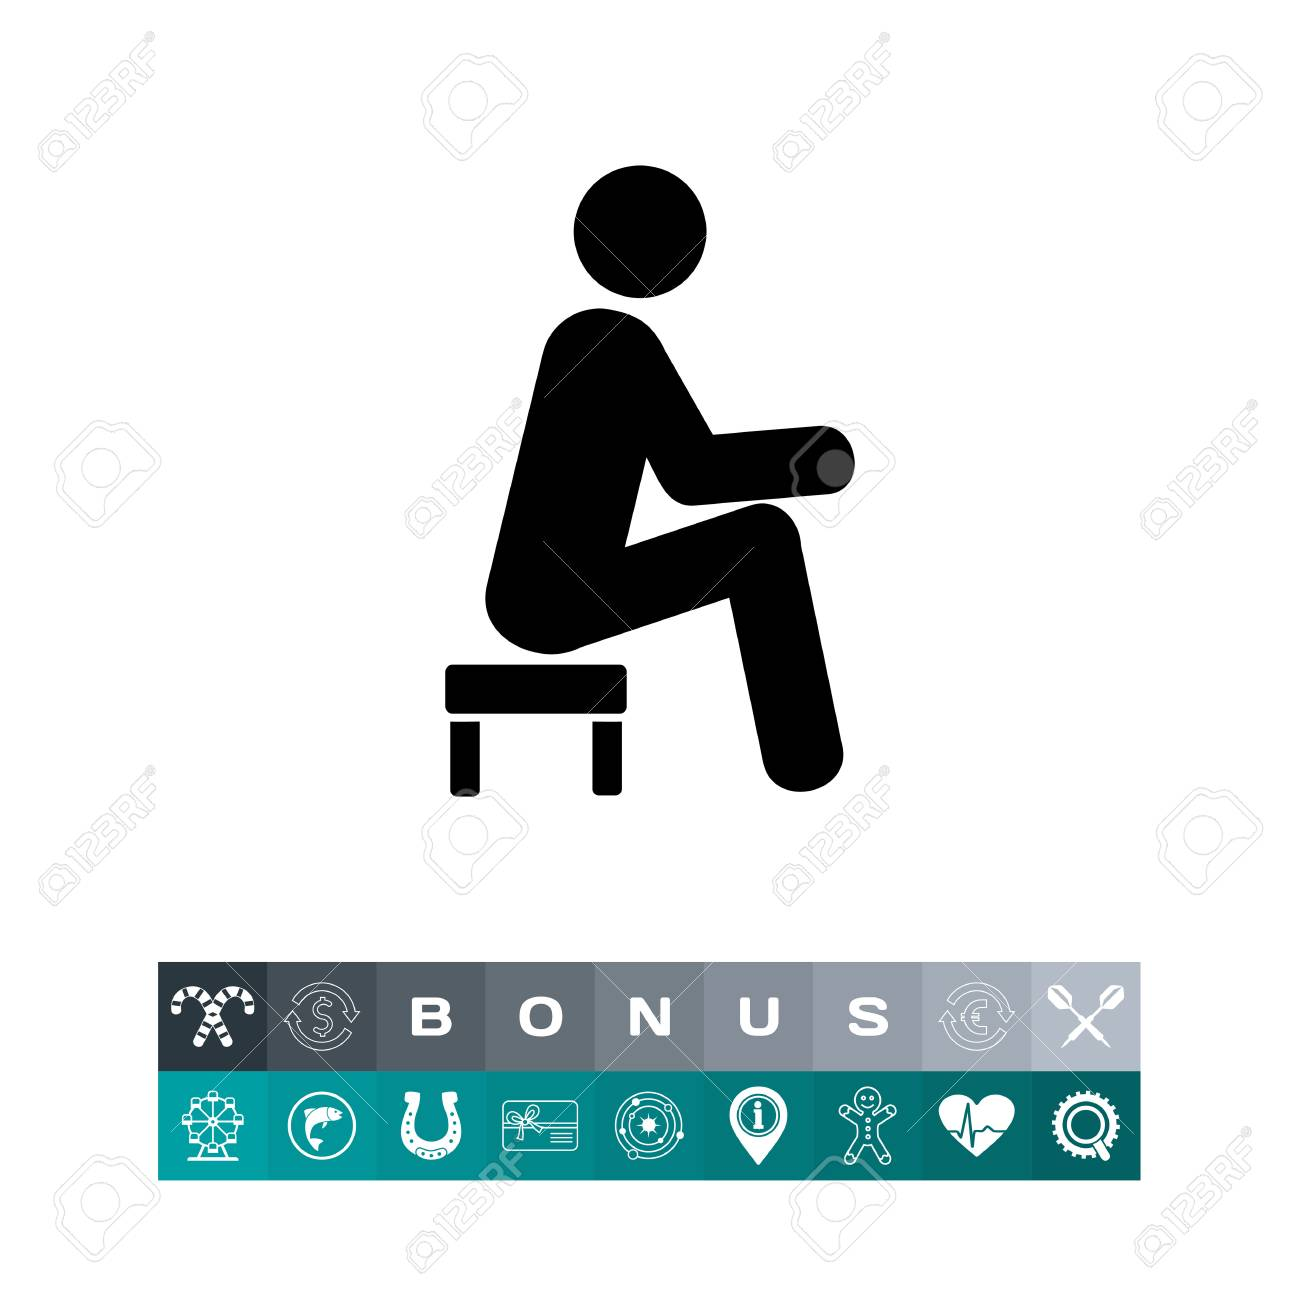 Fabulous Man Sitting On Small Stool Icon Gmtry Best Dining Table And Chair Ideas Images Gmtryco